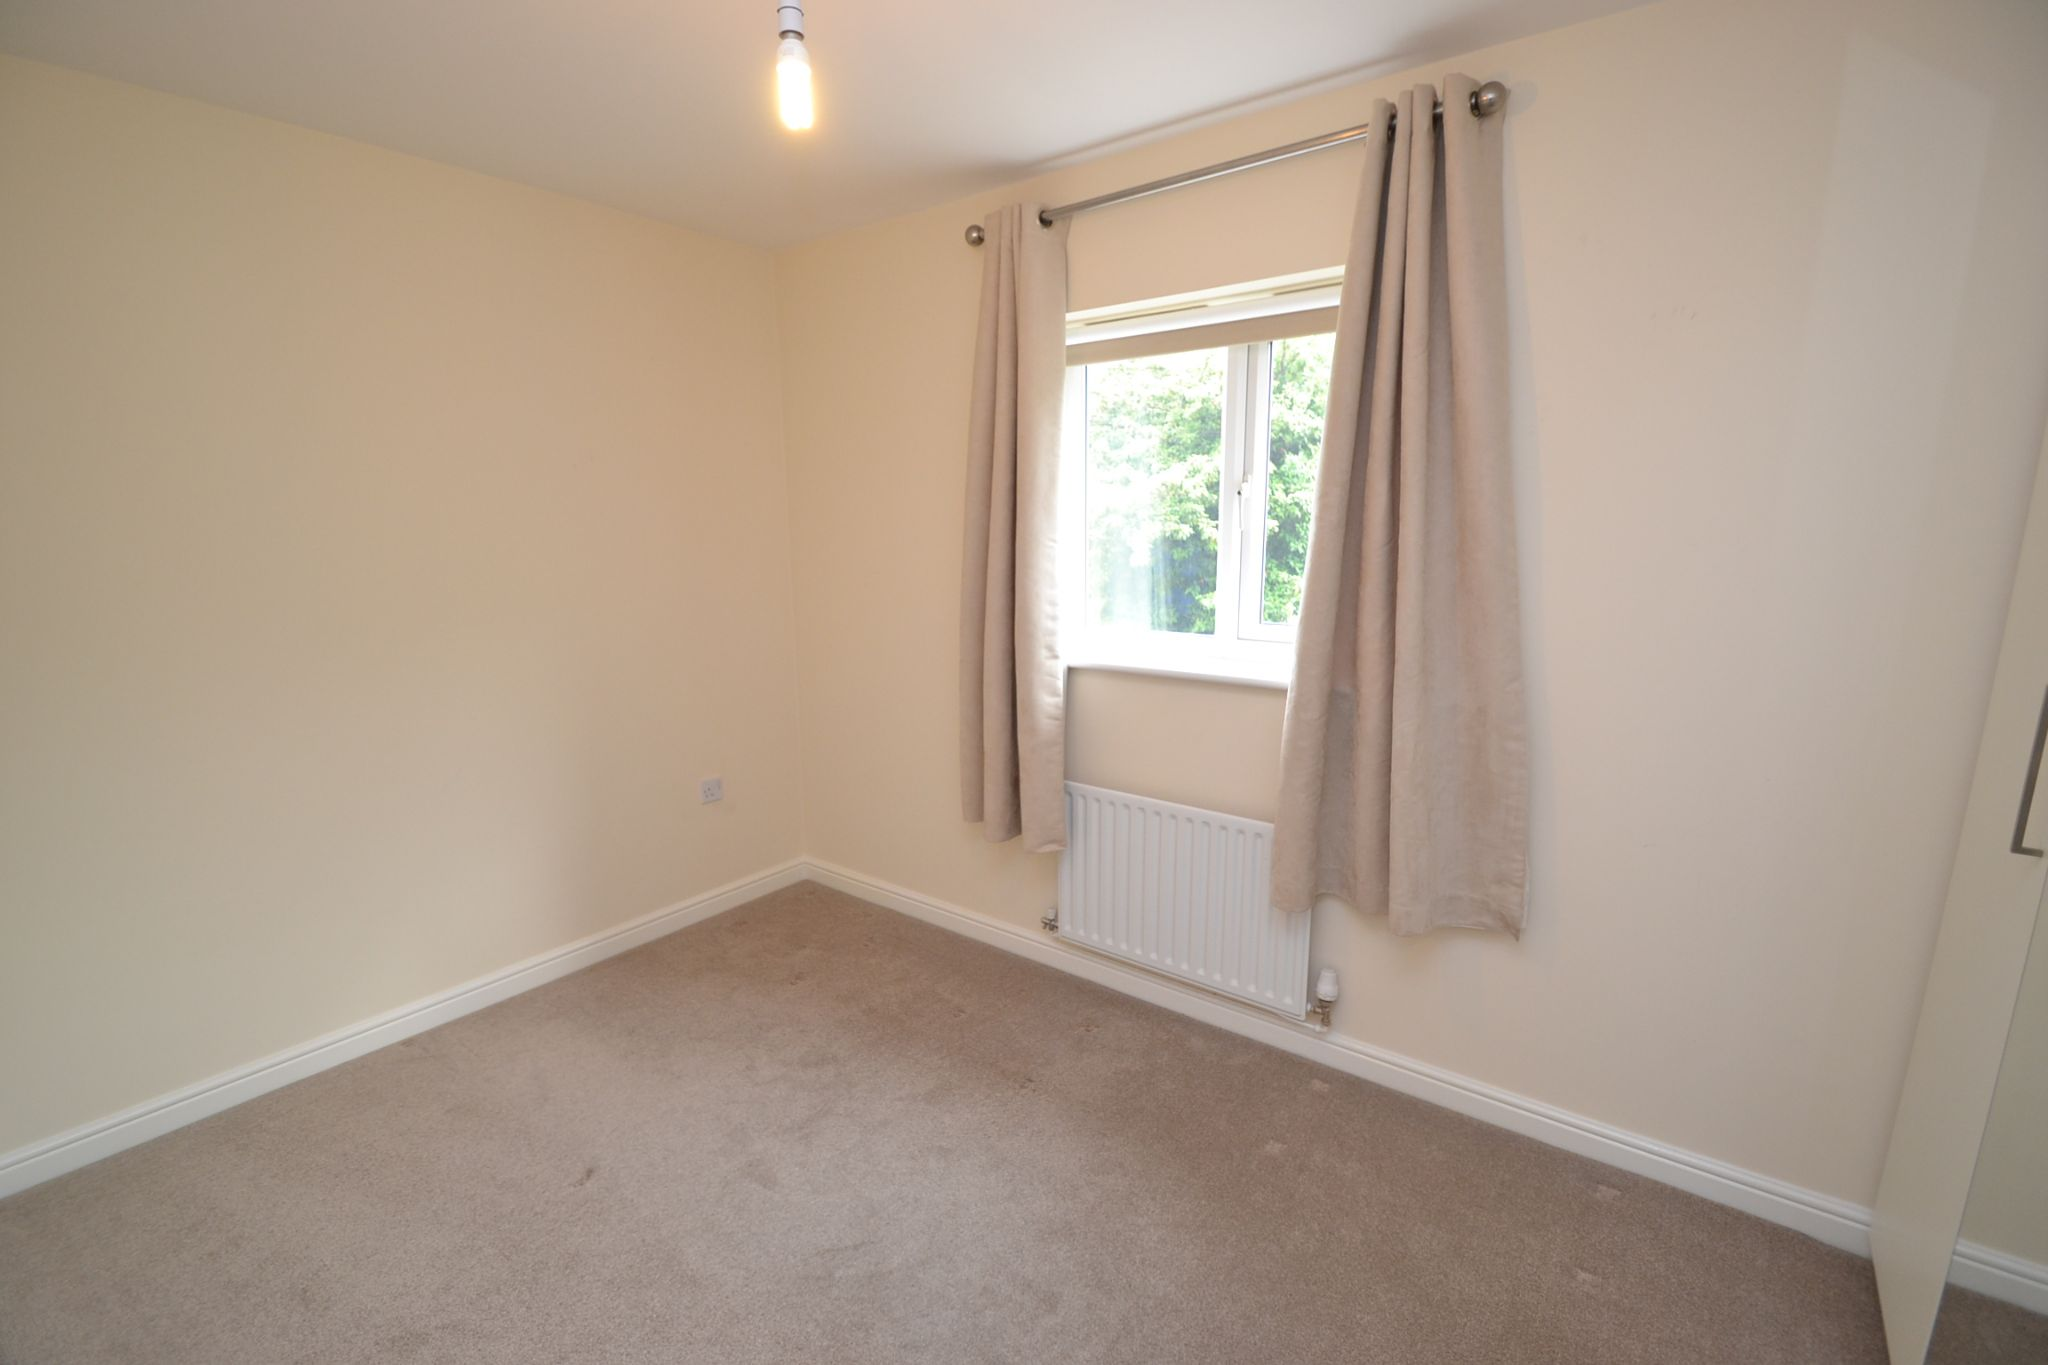 4 Bedroom Detached House For Sale - Photograph 14